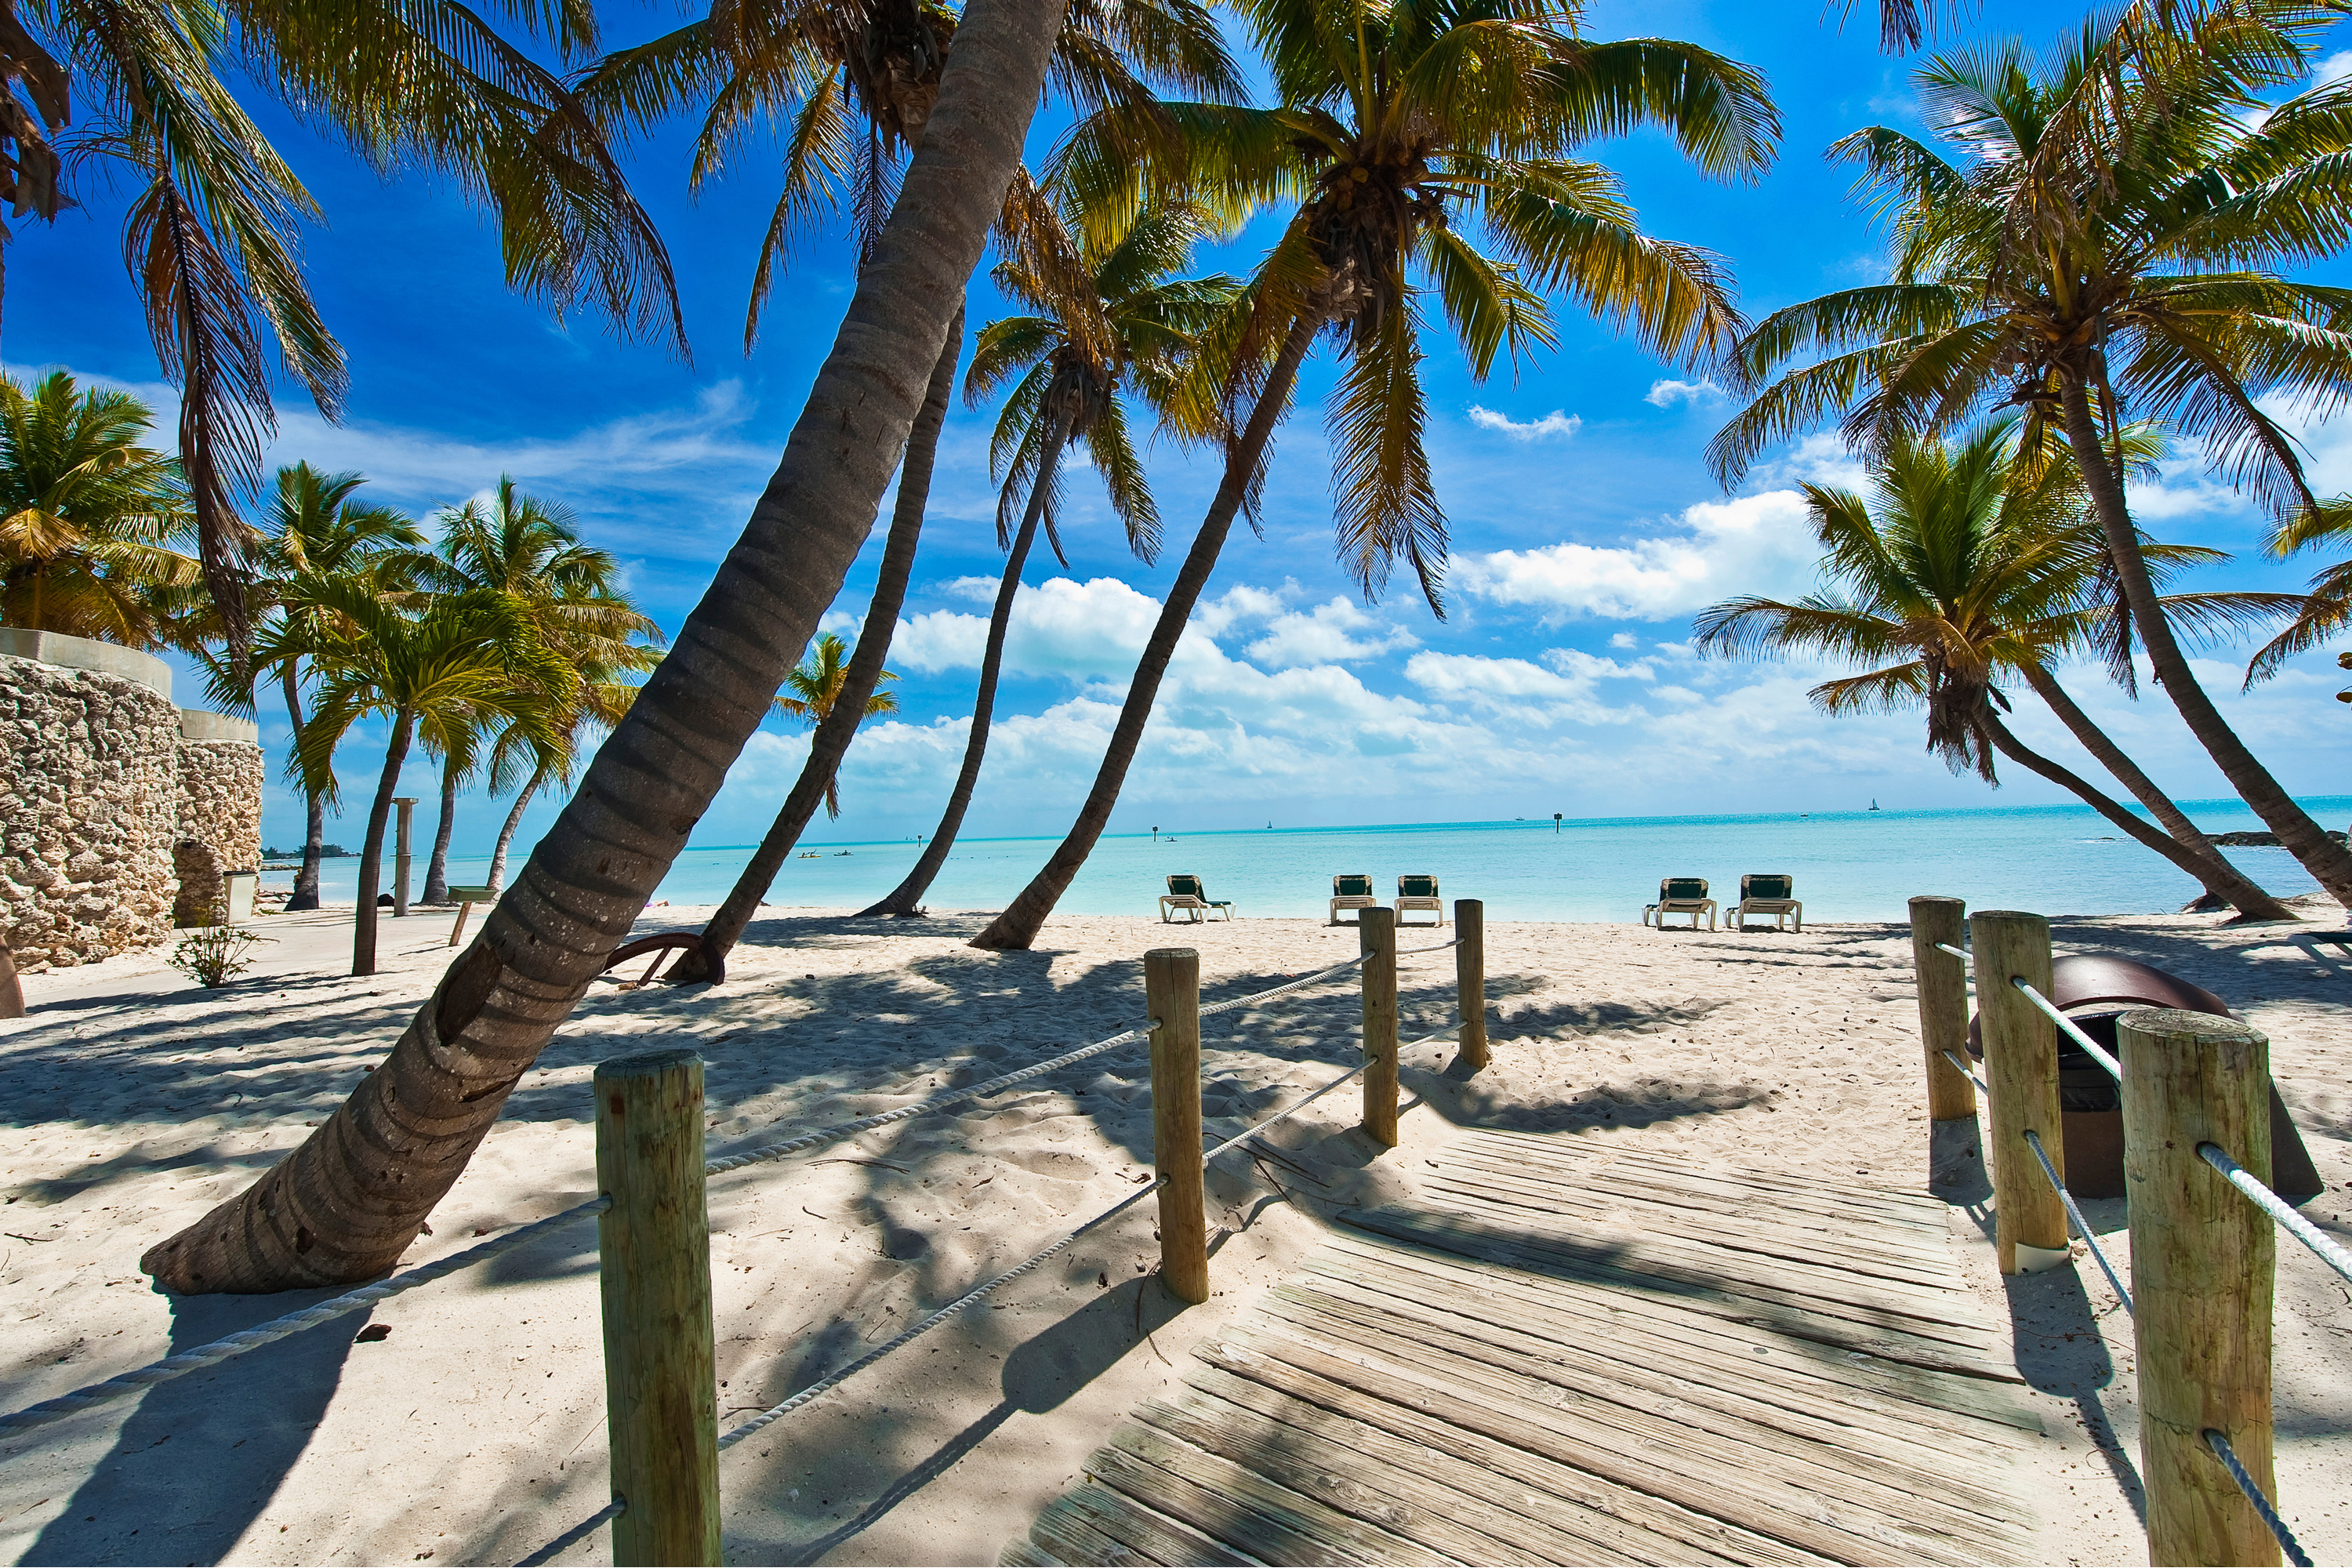 You need to celebrate Christmas on these beaches. They were voted the best for the holiday season and it's the perfect time to soak up a little vitamin D.